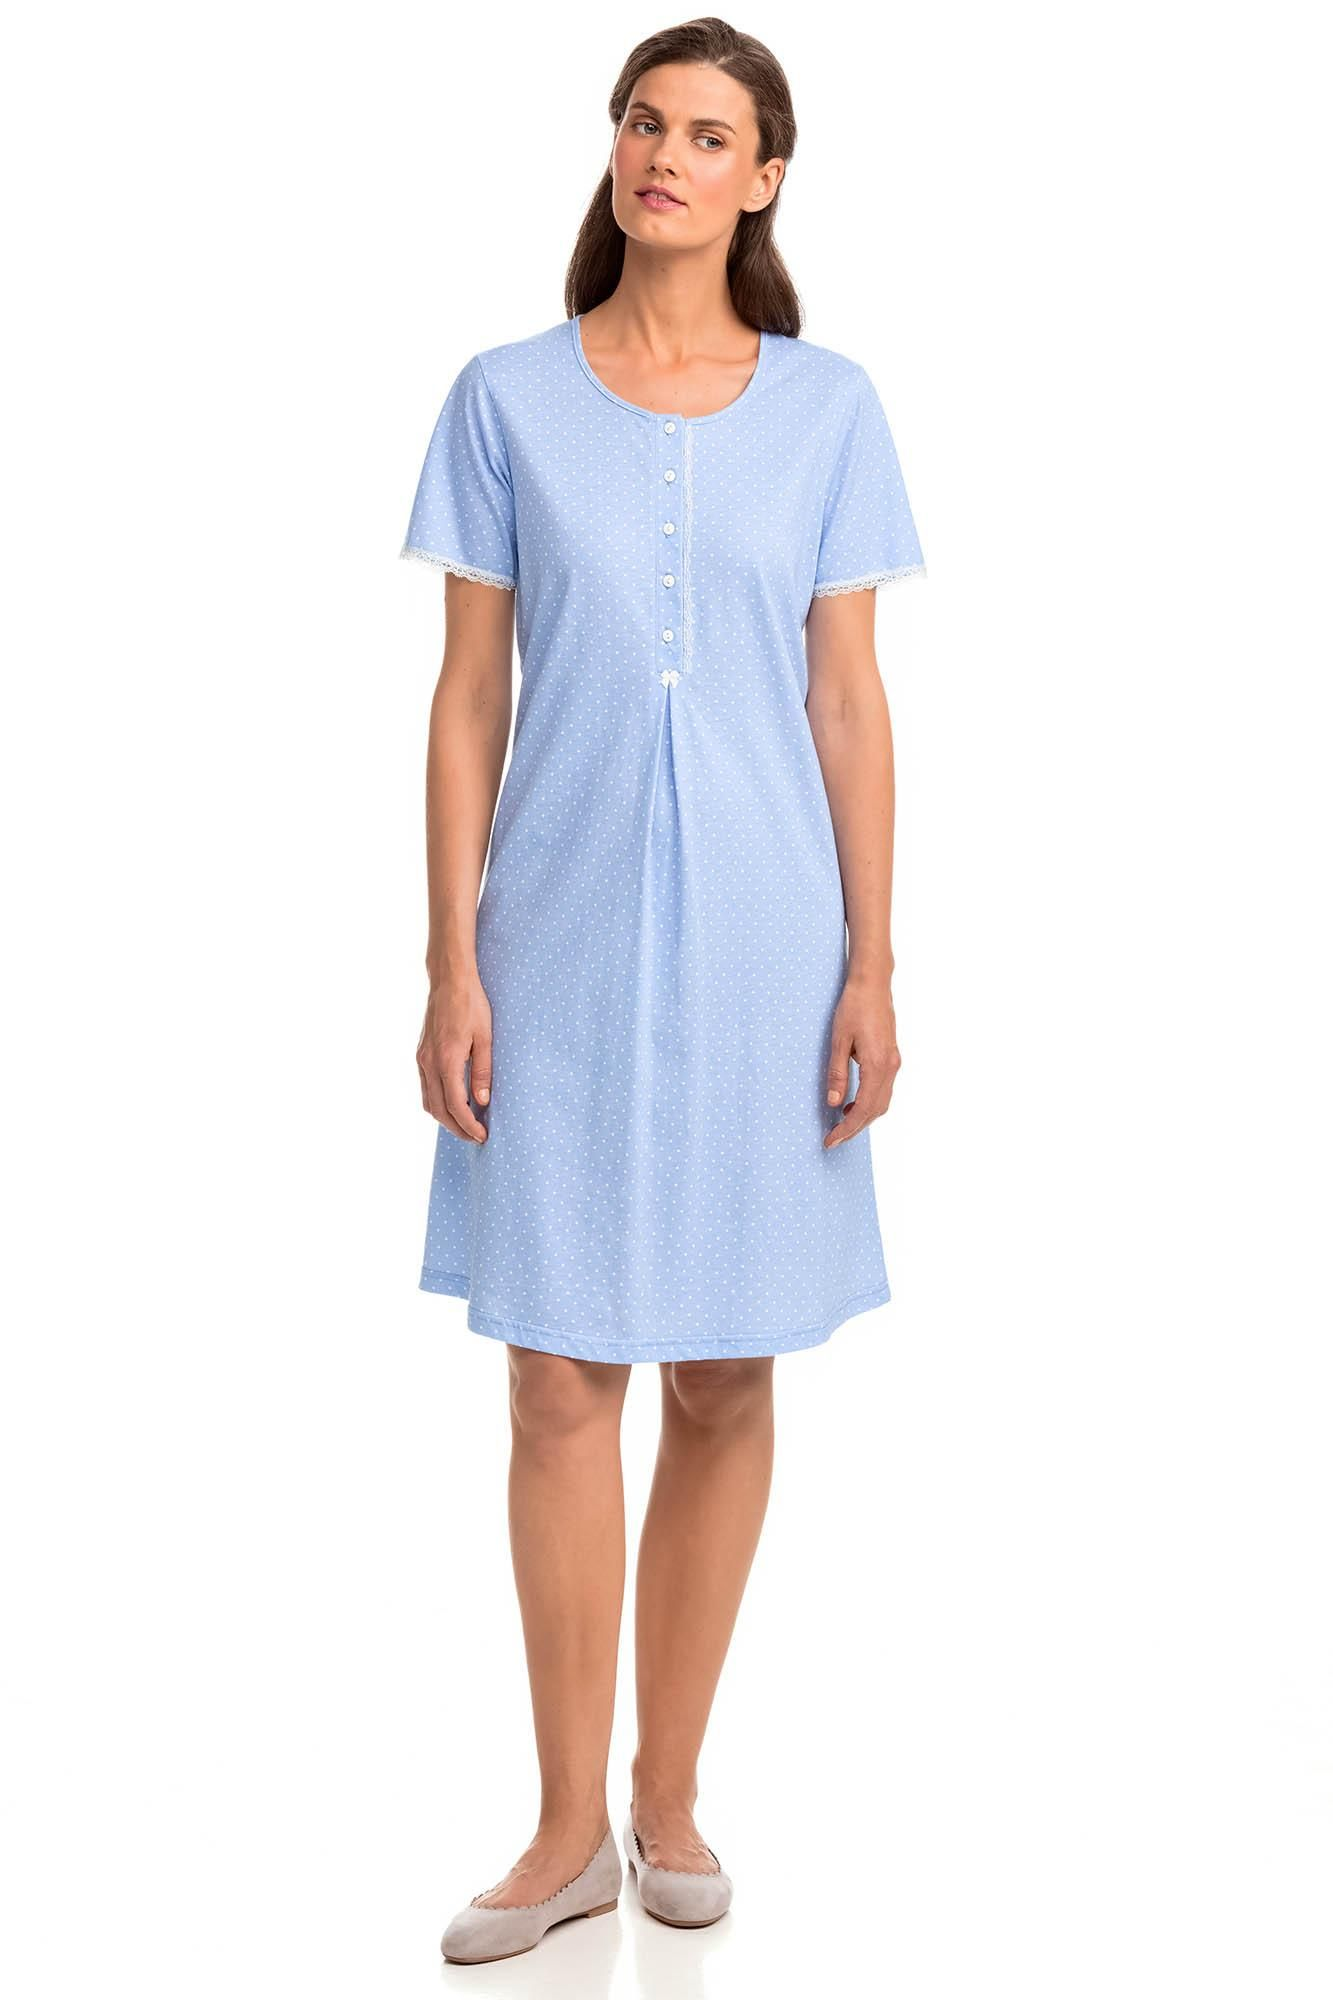 Polka Dot Nightgown with Buttons